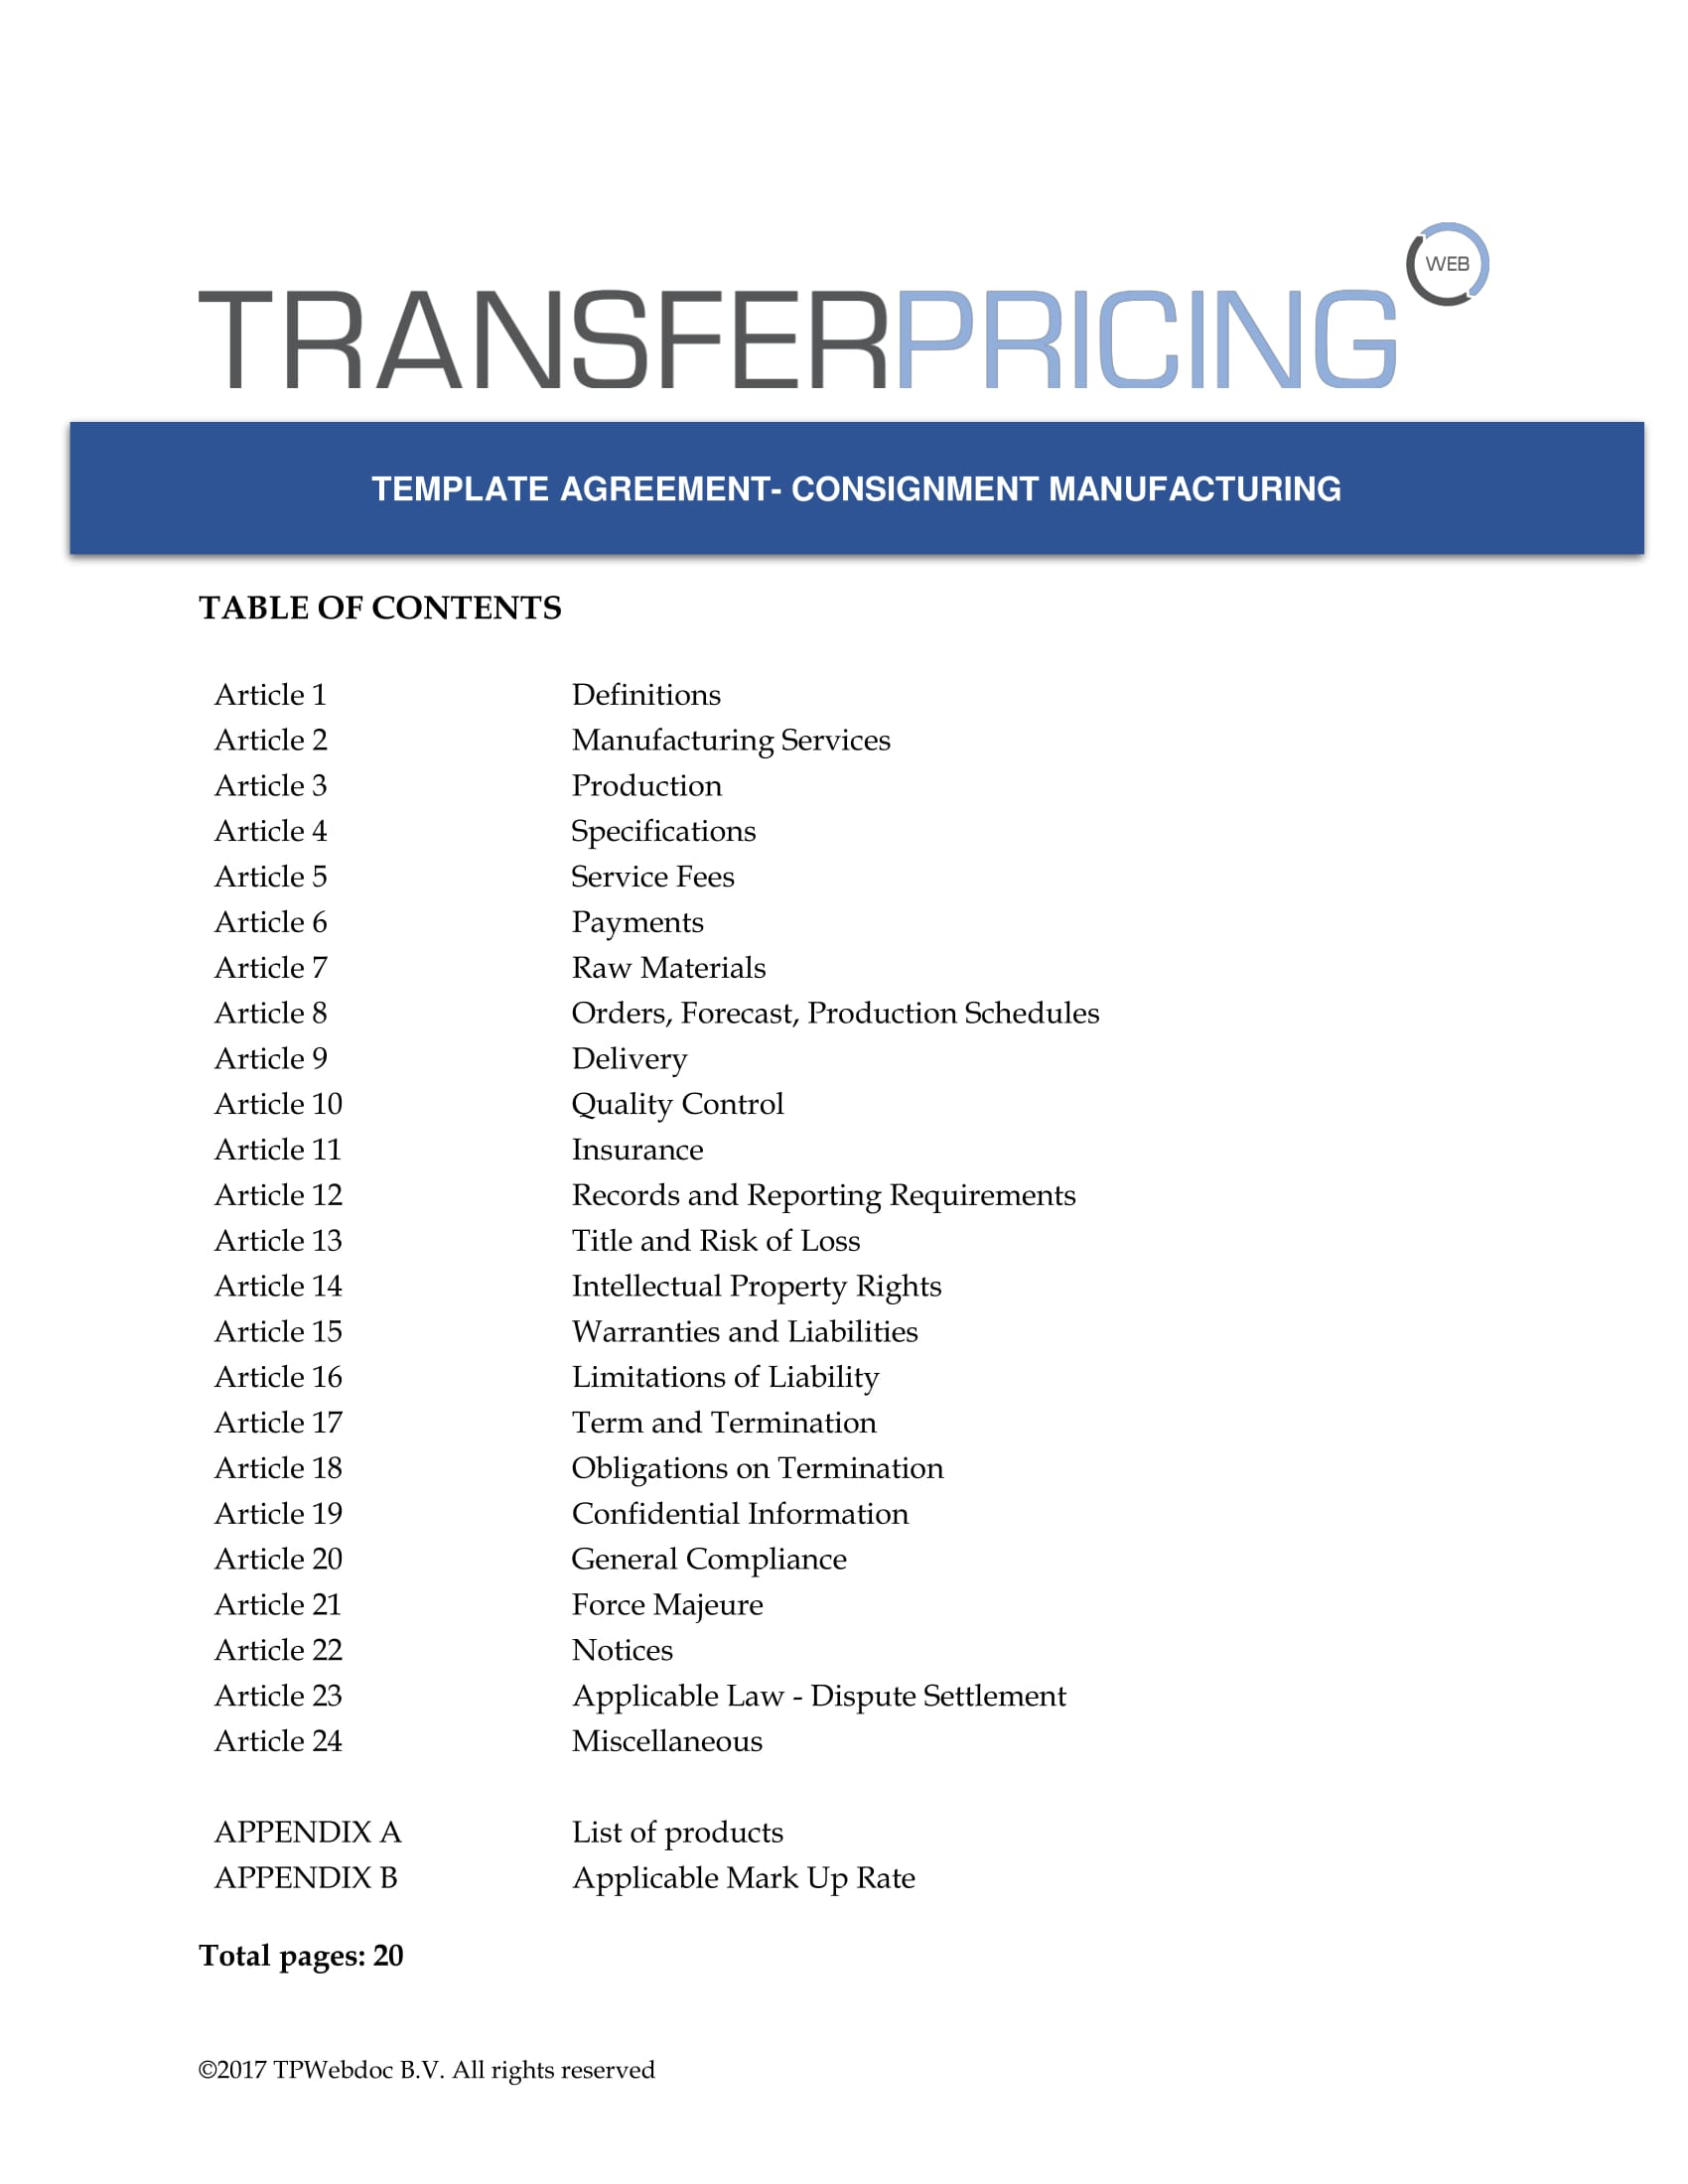 transfer pricing agreement template - consignment manufacturing agreement template transfer